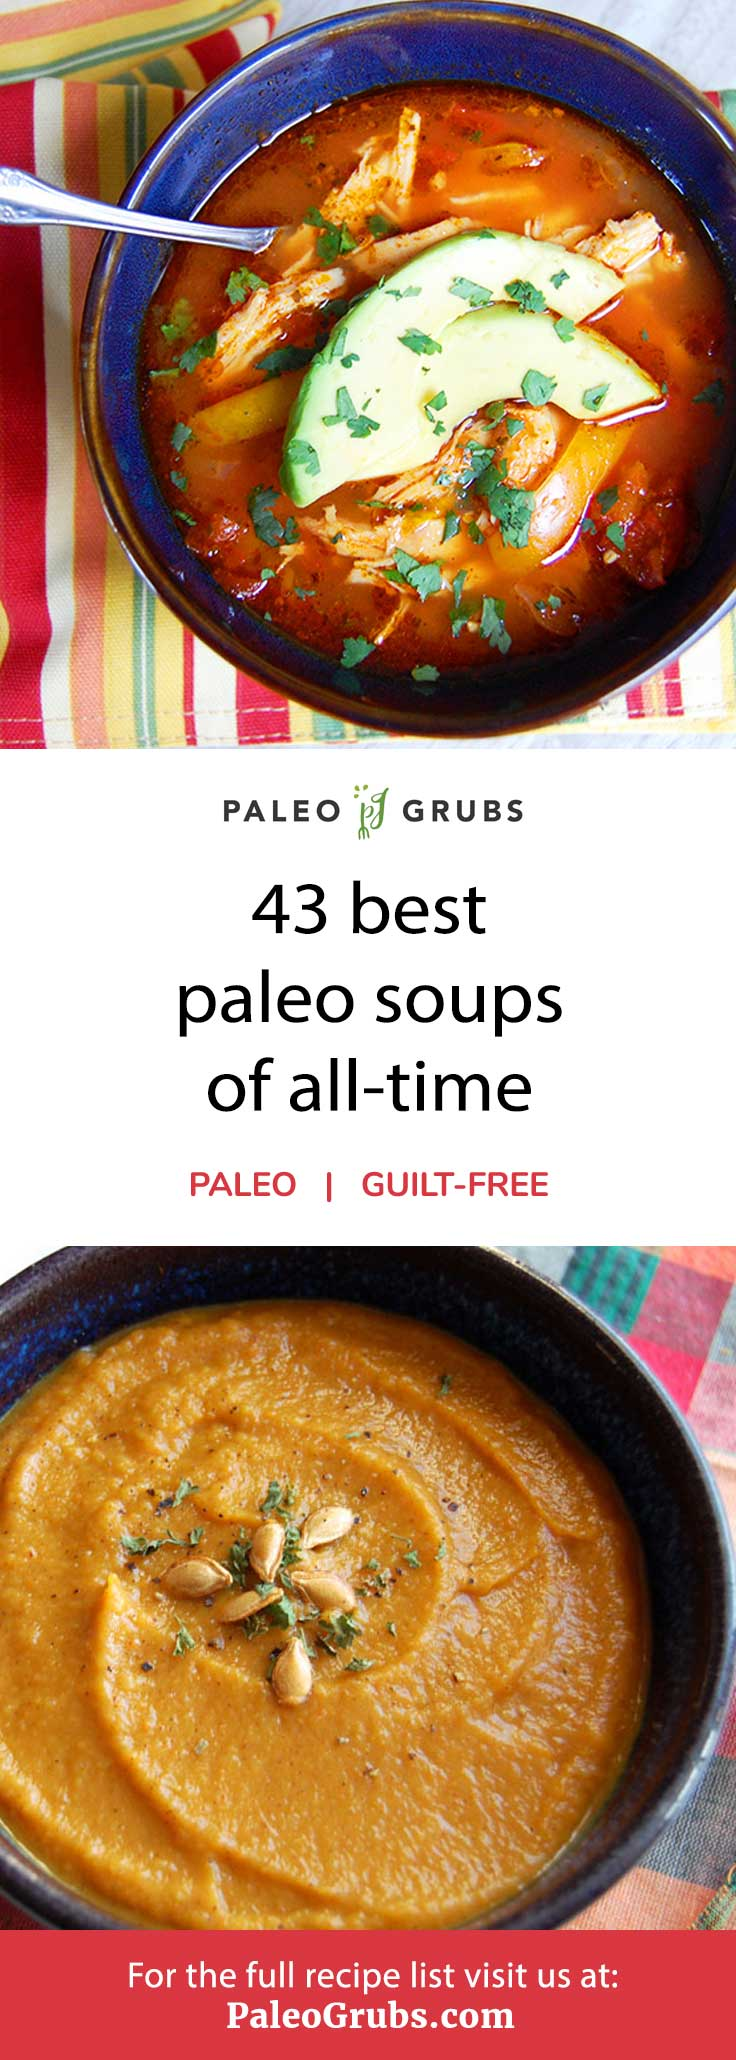 This is a great list of the best paleo soup recipes. From classic, comforting soups like tomato basil to easy recipes like slow cooker chicken tortilla soup.